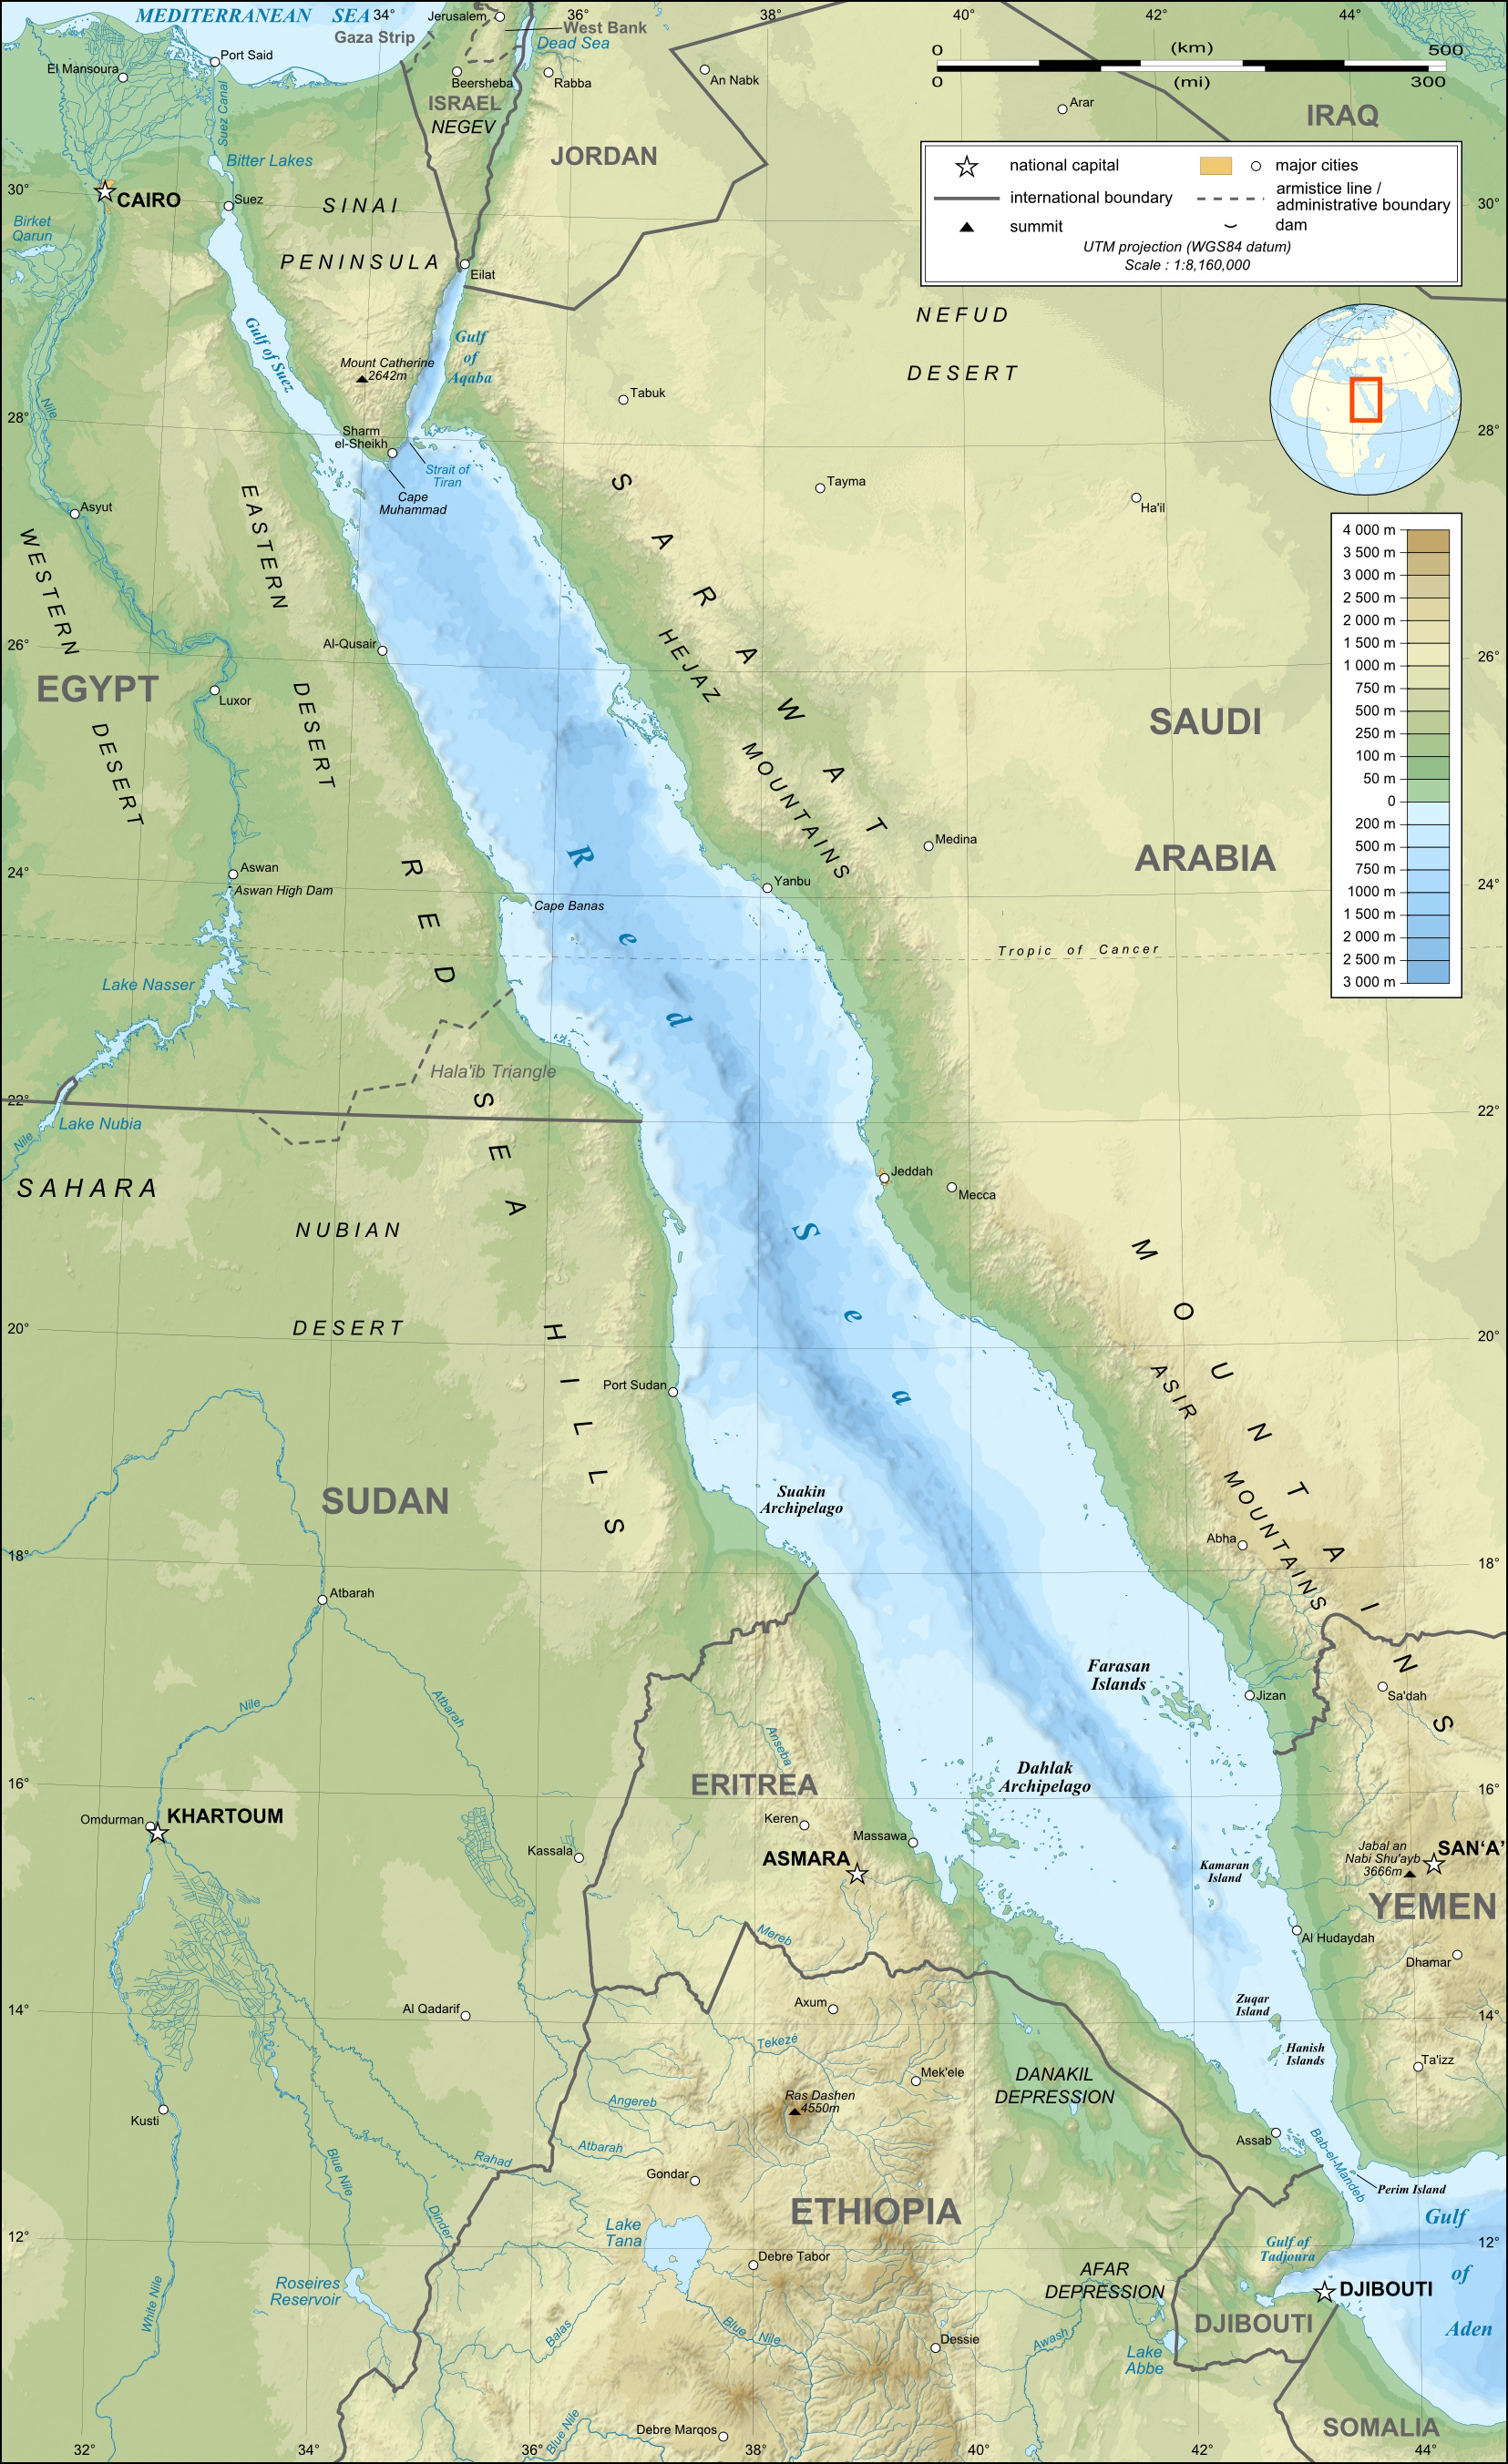 The Suez Canal was a part of the world's history, and it was Britain's imperial lynch-pin for several decades, before some crazy Egyptian colonel went and ruined everything...